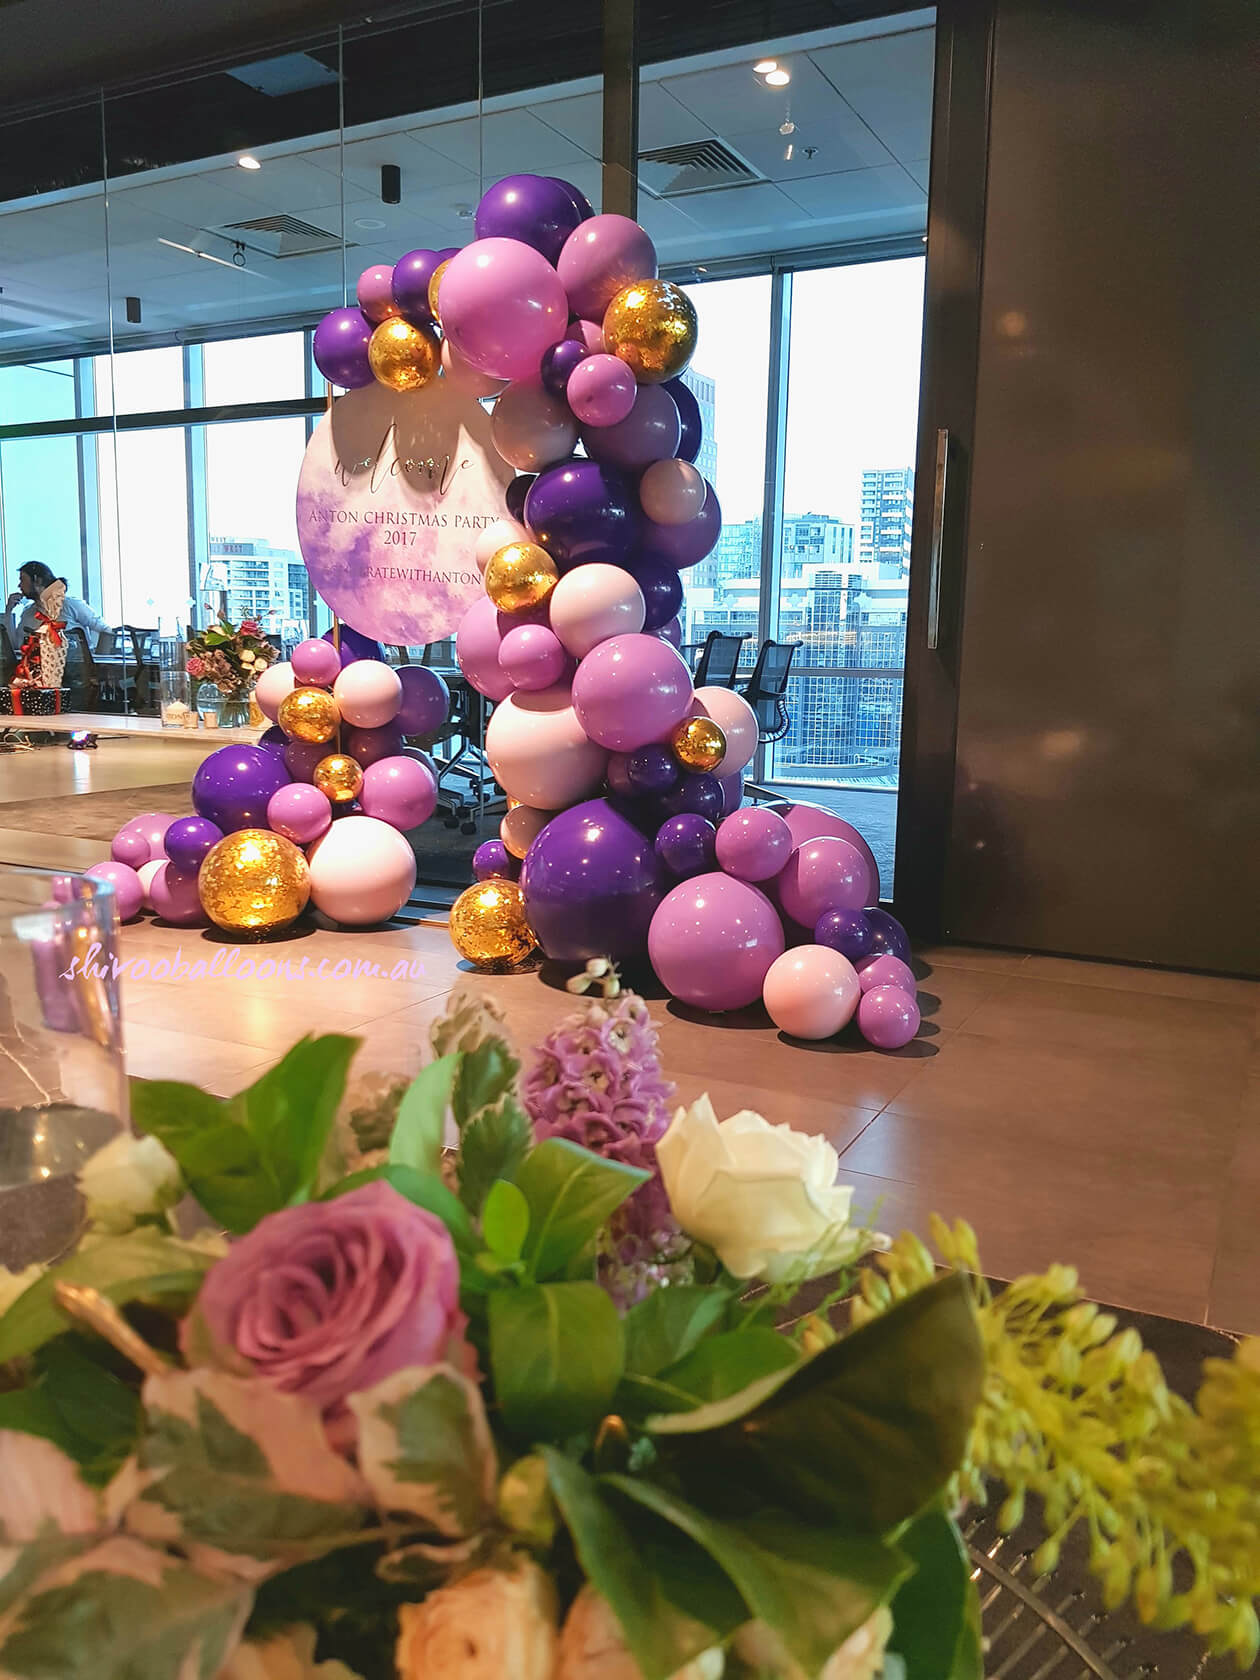 Different shades of violet balloon arrangement - see our events - business event decor - shivoo balloons and decor specialists in coburg north